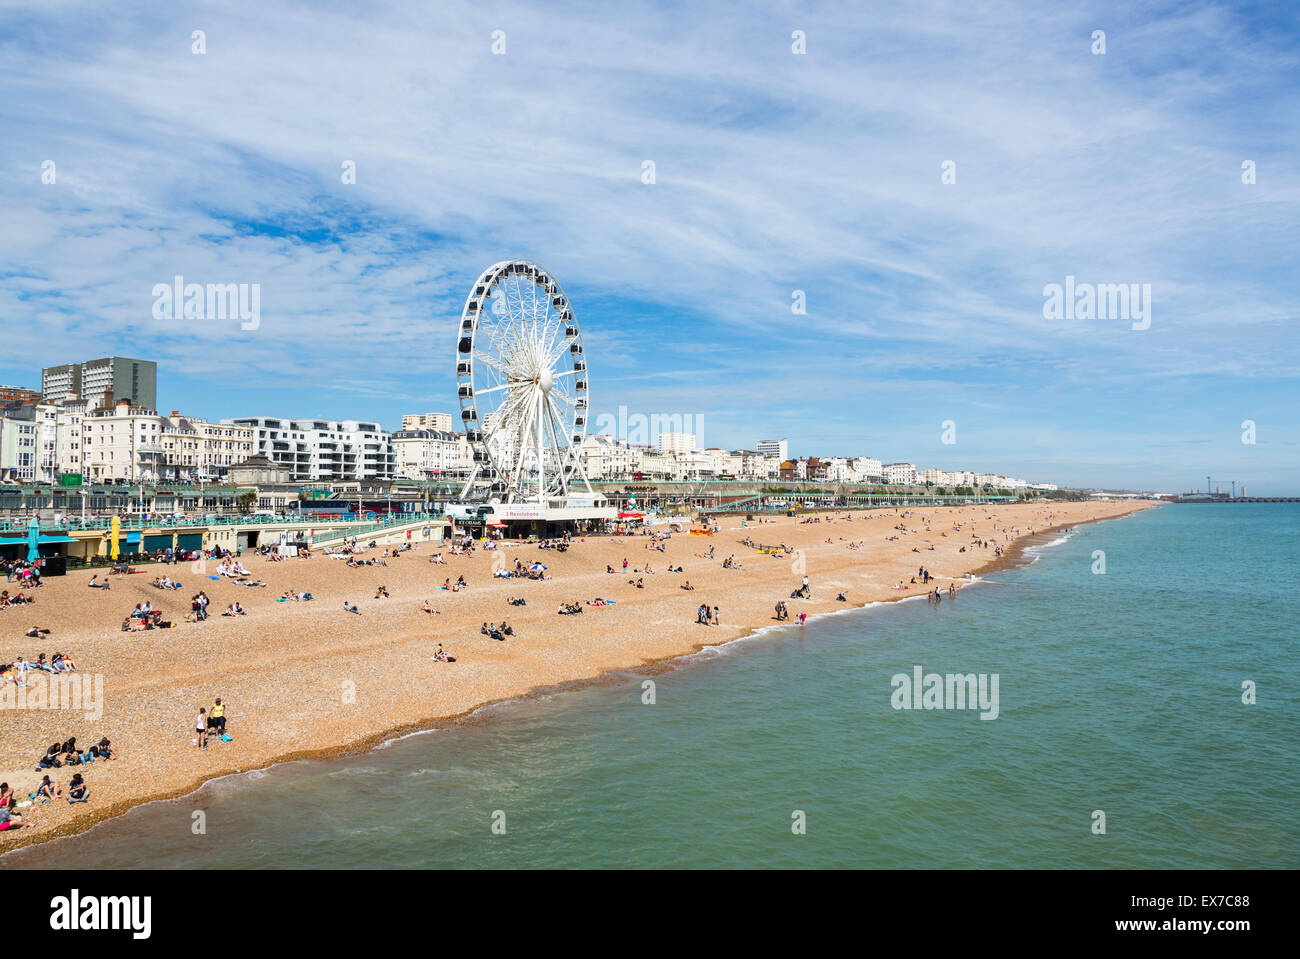 Brighton Beach with seafront promenade and Brighton Wheel on a sunny summer's day, Brighton, East Sussex, UK - Stock Image